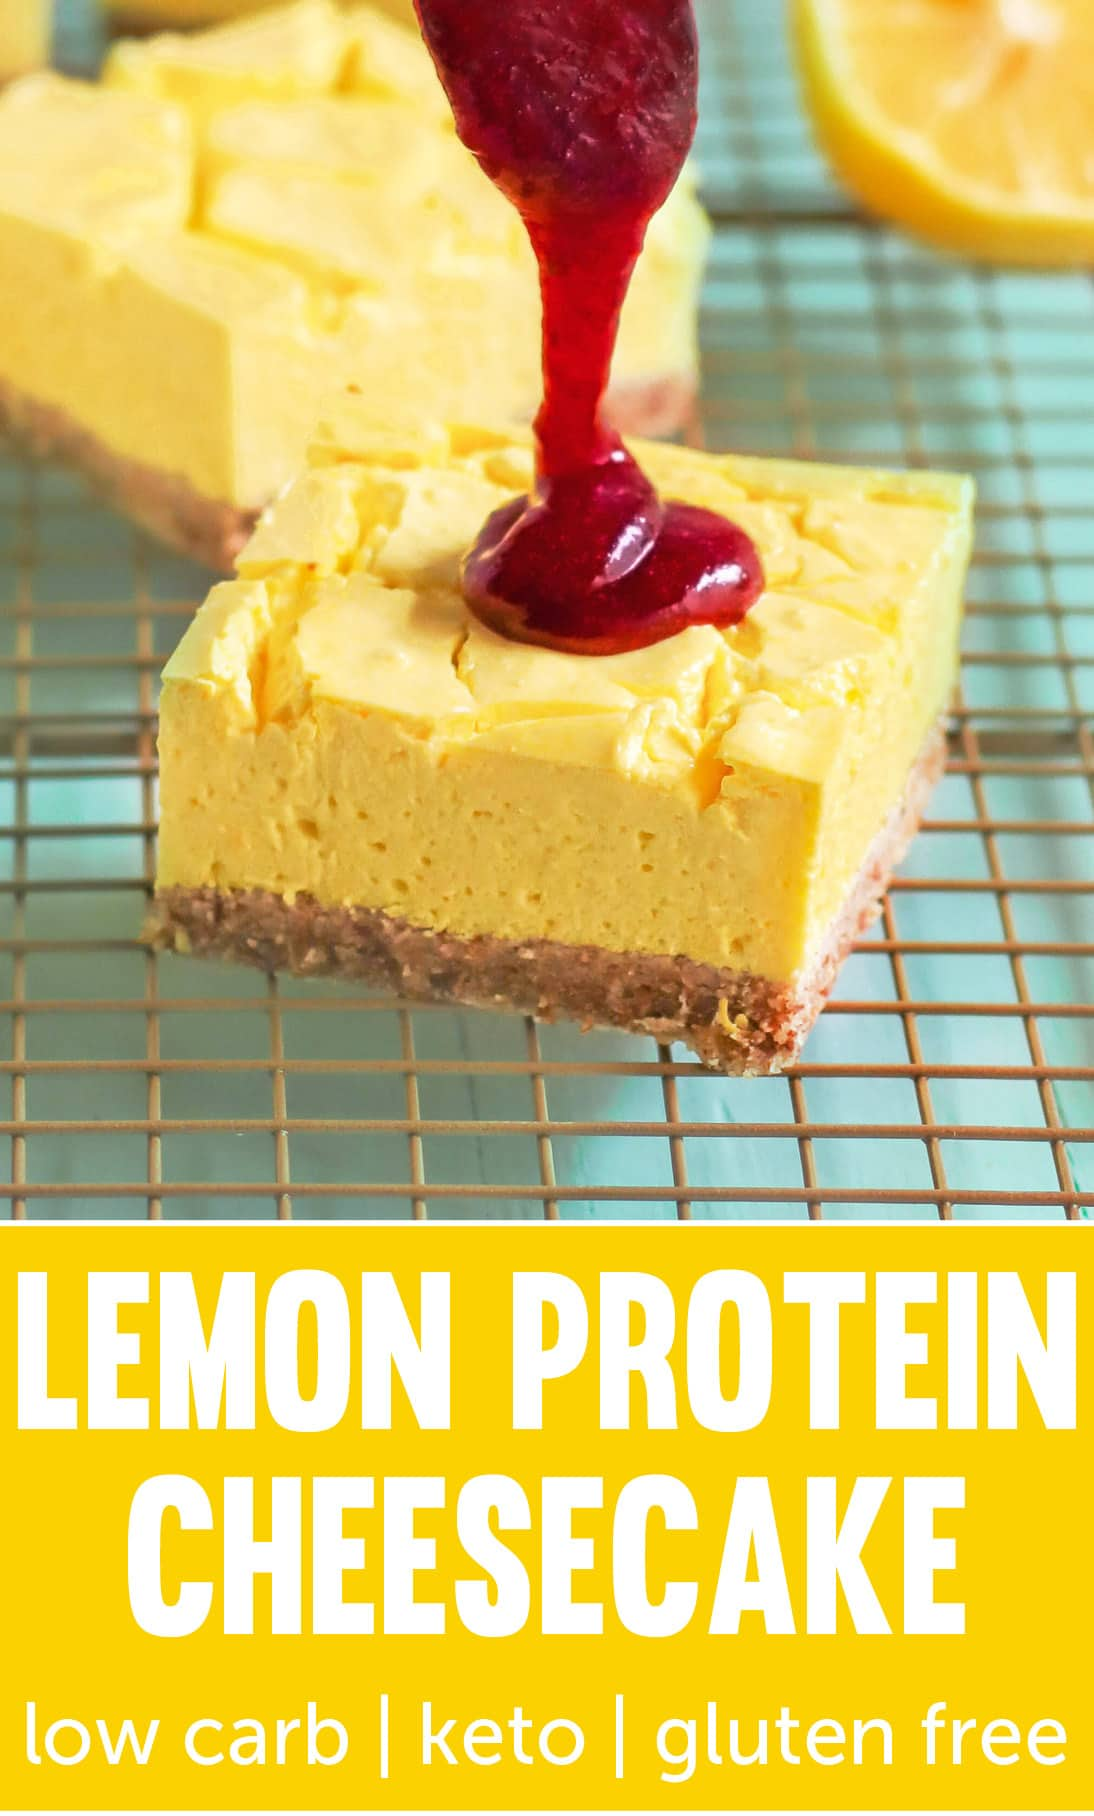 If you like cheesecake but don't want all the extra fat, calories, and sugar, make these Lemon Cheesecake Bars! It's just as rich and tasty as the original, but it's secretly sugar free, low carb, high protein, gluten free, and keto-friendly too!